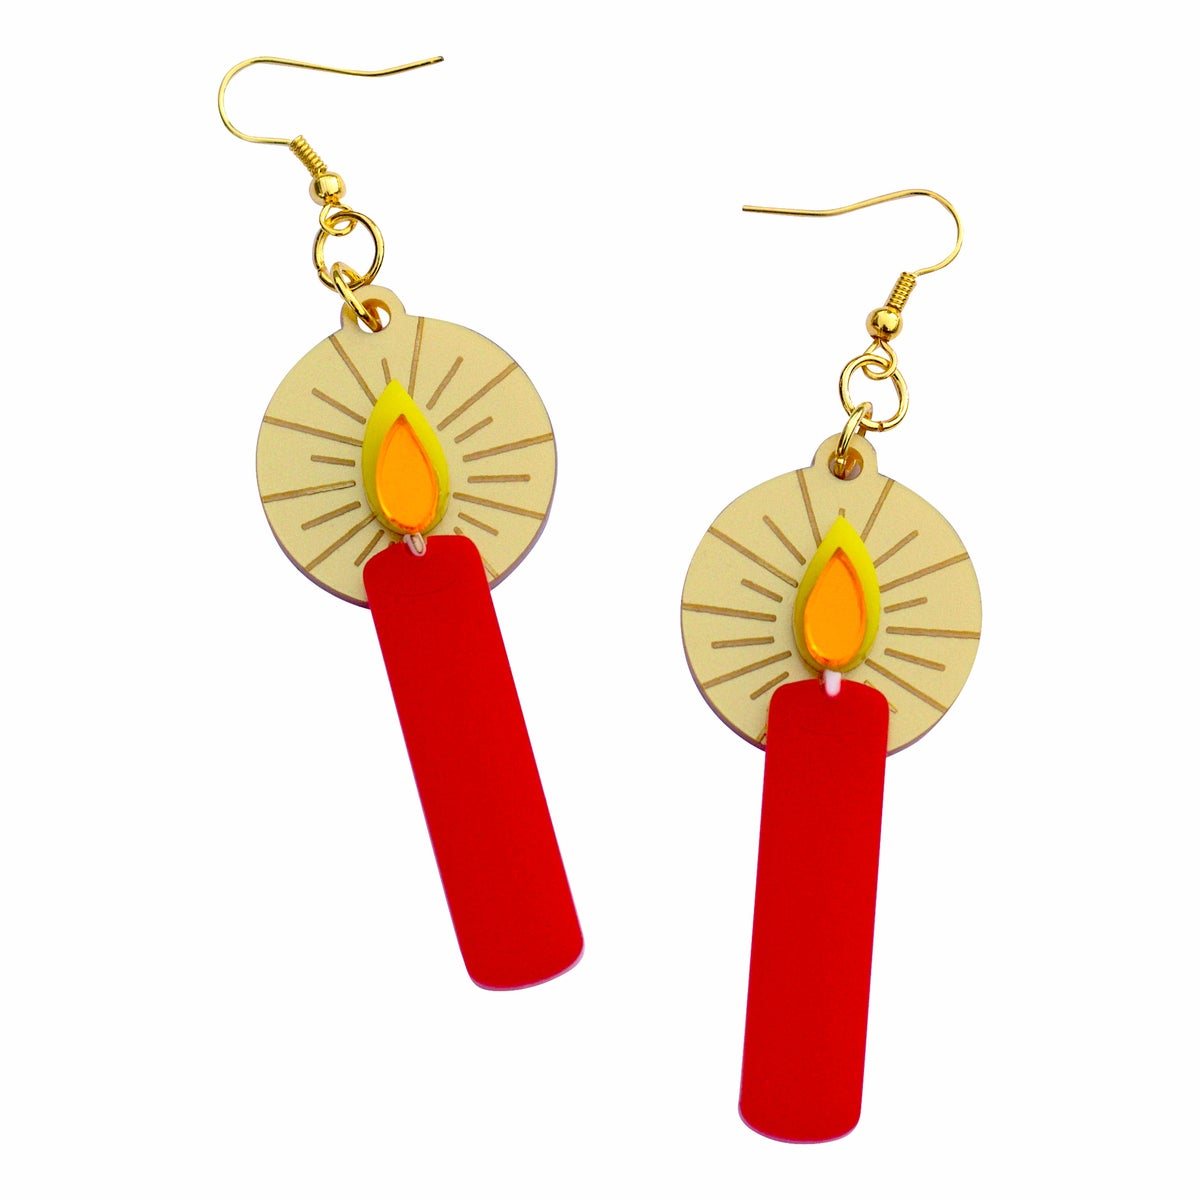 Image of Retro Advent Candle Pendant Earrings